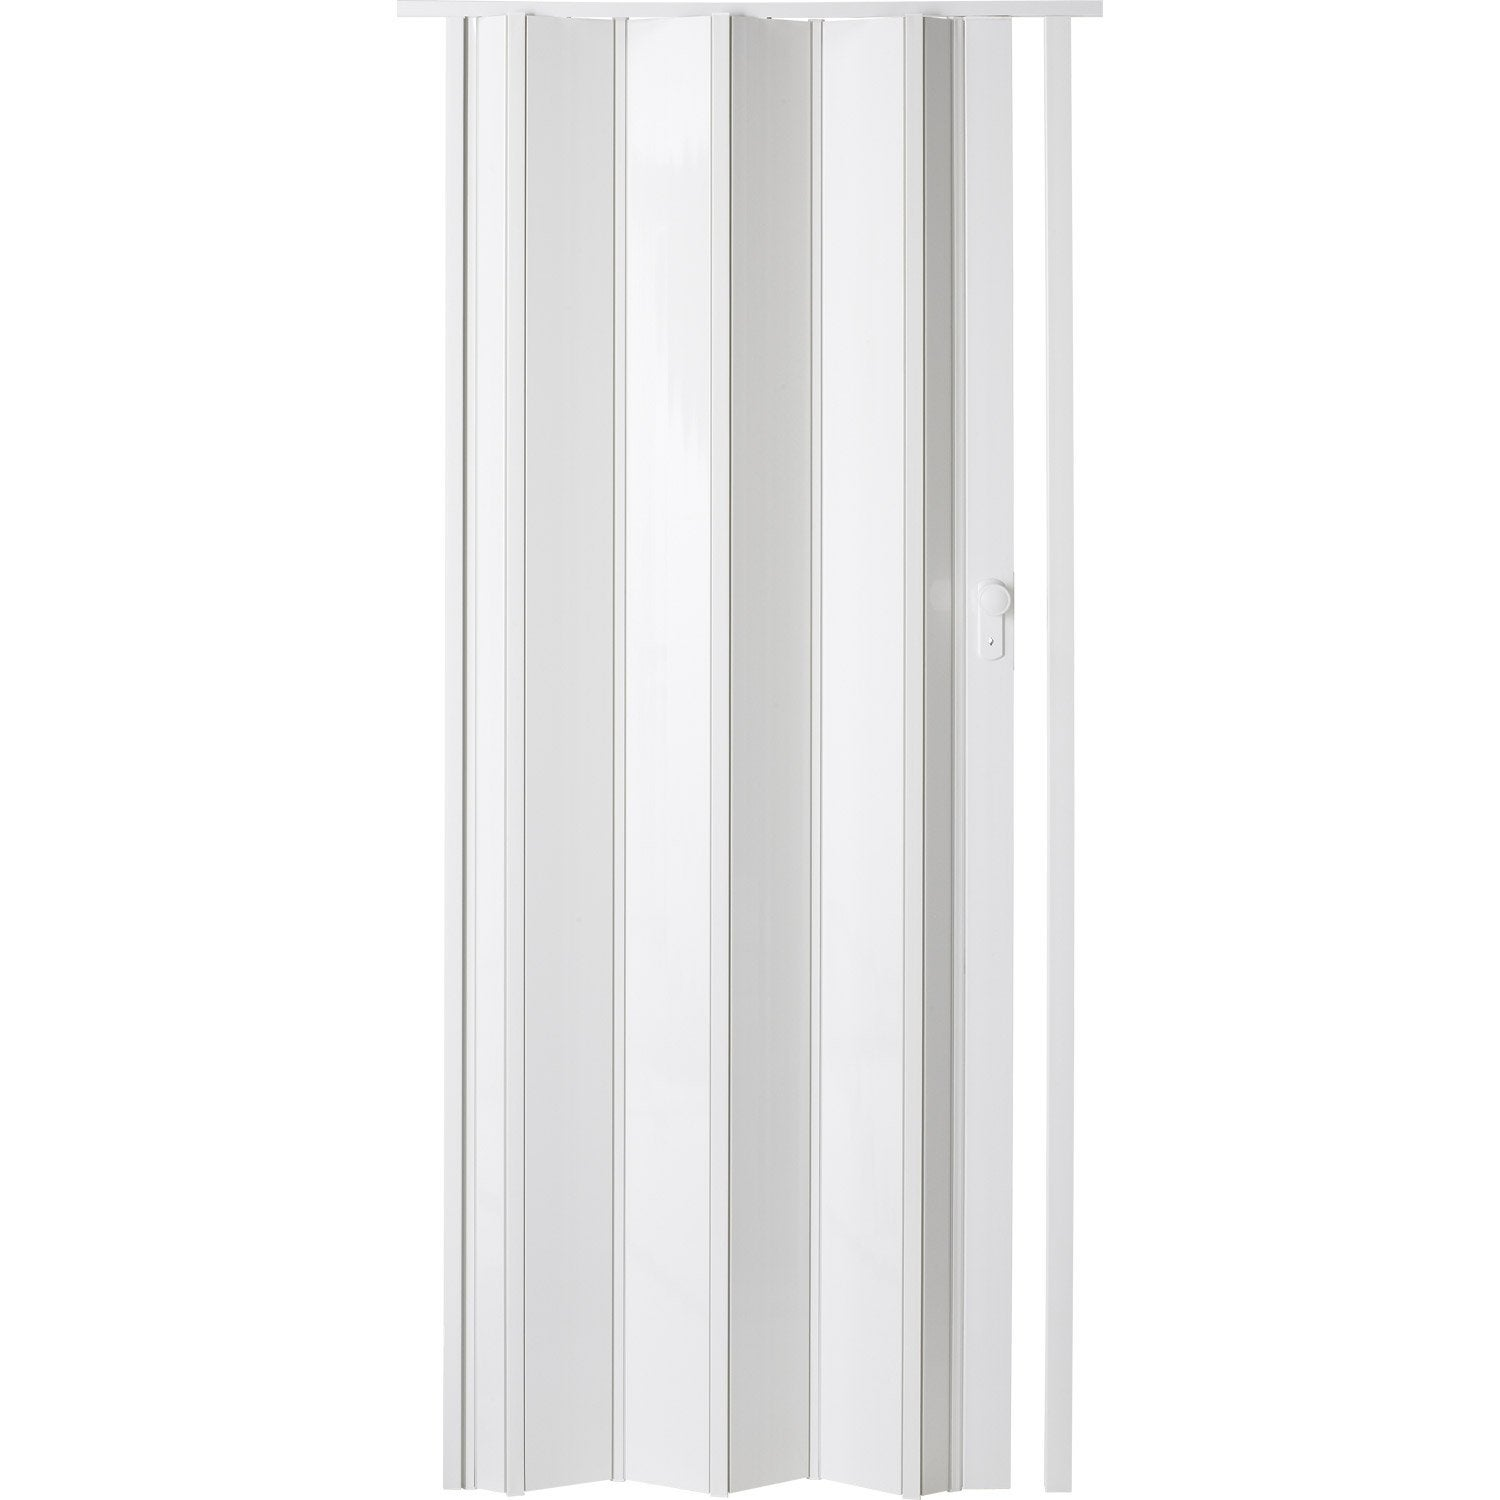 Bloc porte coulissante leroy merlin maison design for Deco porte leroy merlin